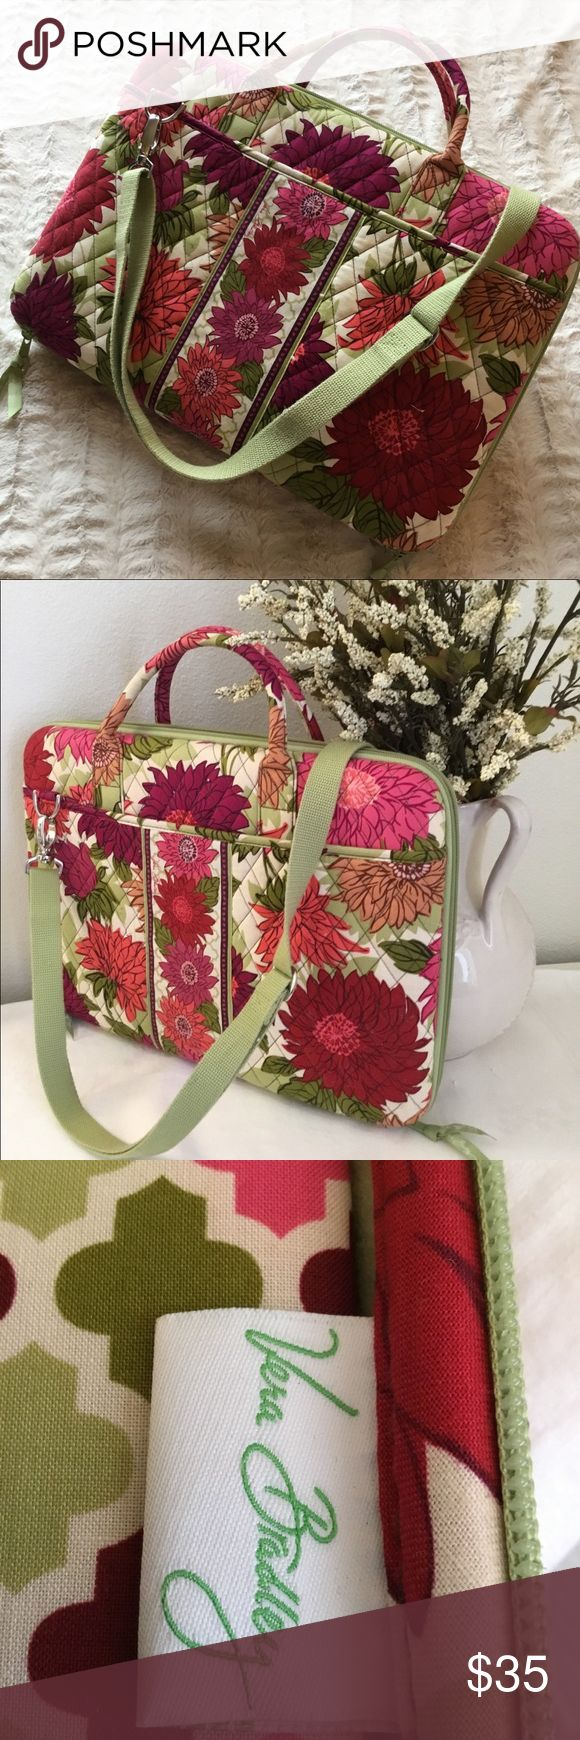 """Vera Bradley laptop carry case Beautiful Vera Bradley laptop case- will accommodate 15"""" laptop, has adjustable balance bar to assure laptop stays secure. Used for 2 weeks (then had to use my employers logo case only🙁). Vera Bradley Bags Laptop Bags"""